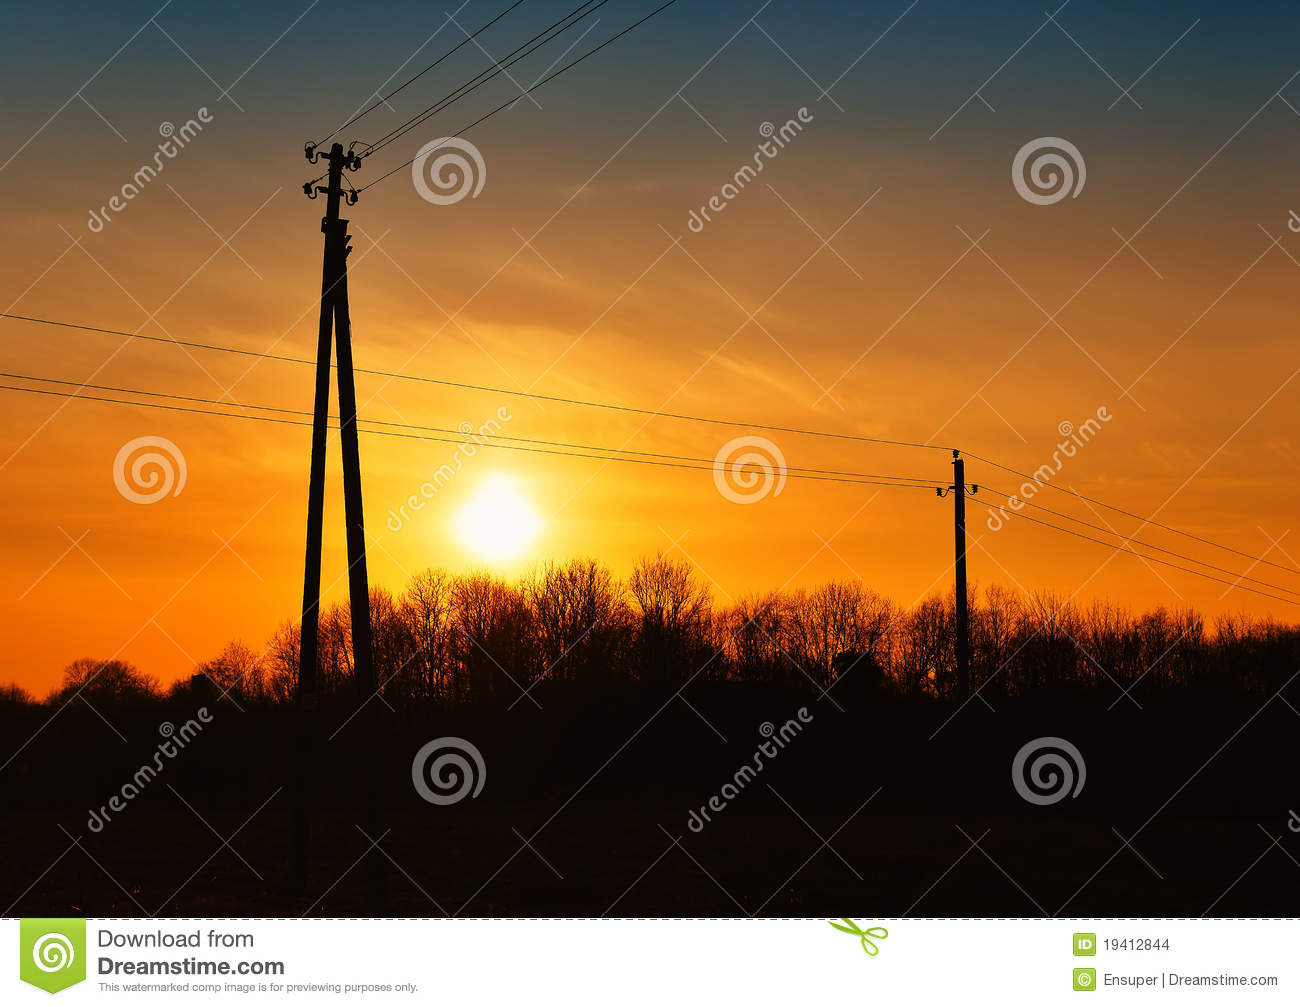 Sunset With High Voltage Power Lines Stock Images - Image ...